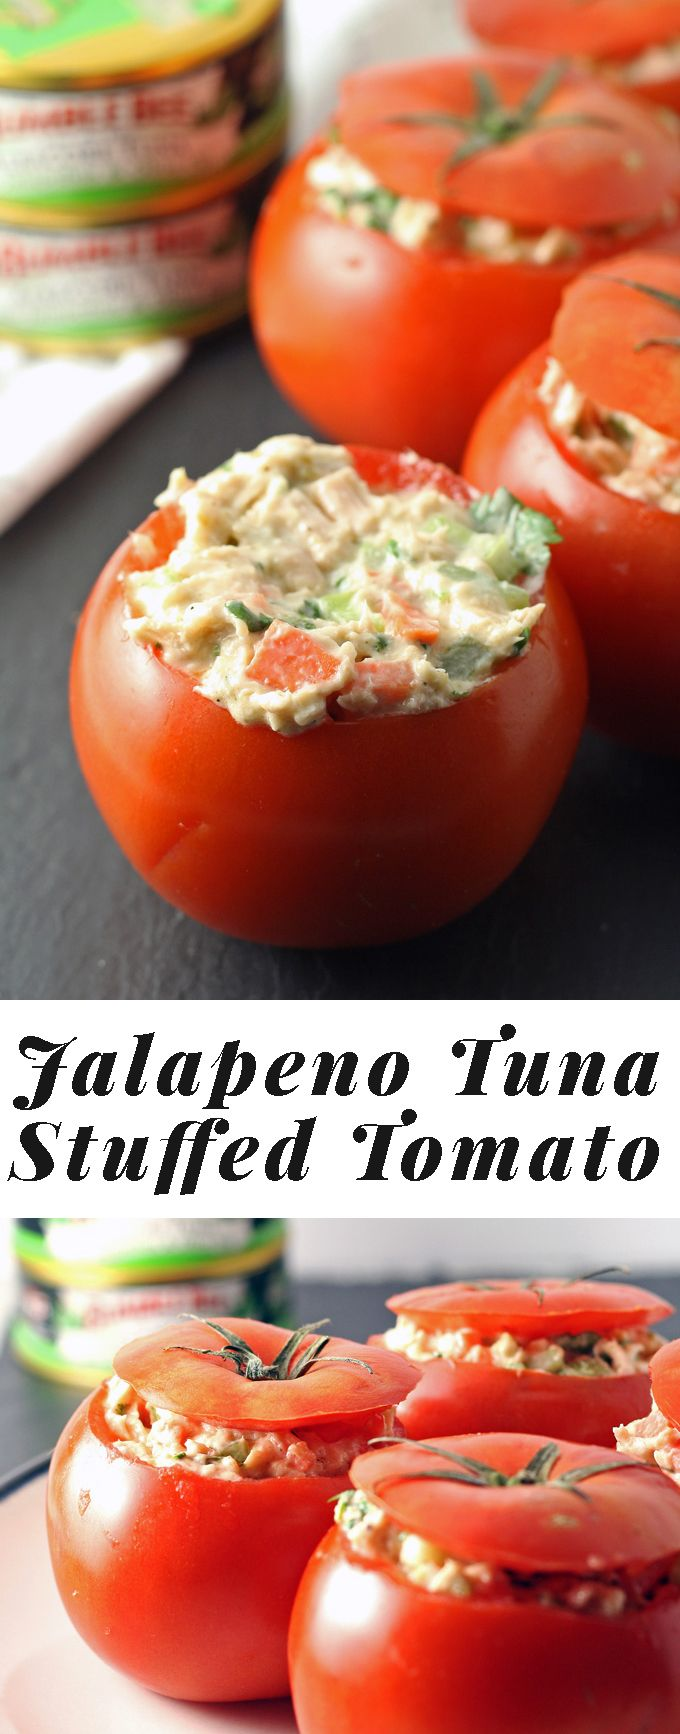 Jalapeno Tuna Stuffed Tomato Recipe - perfect for a quick lunch! | honeyandbirch.com